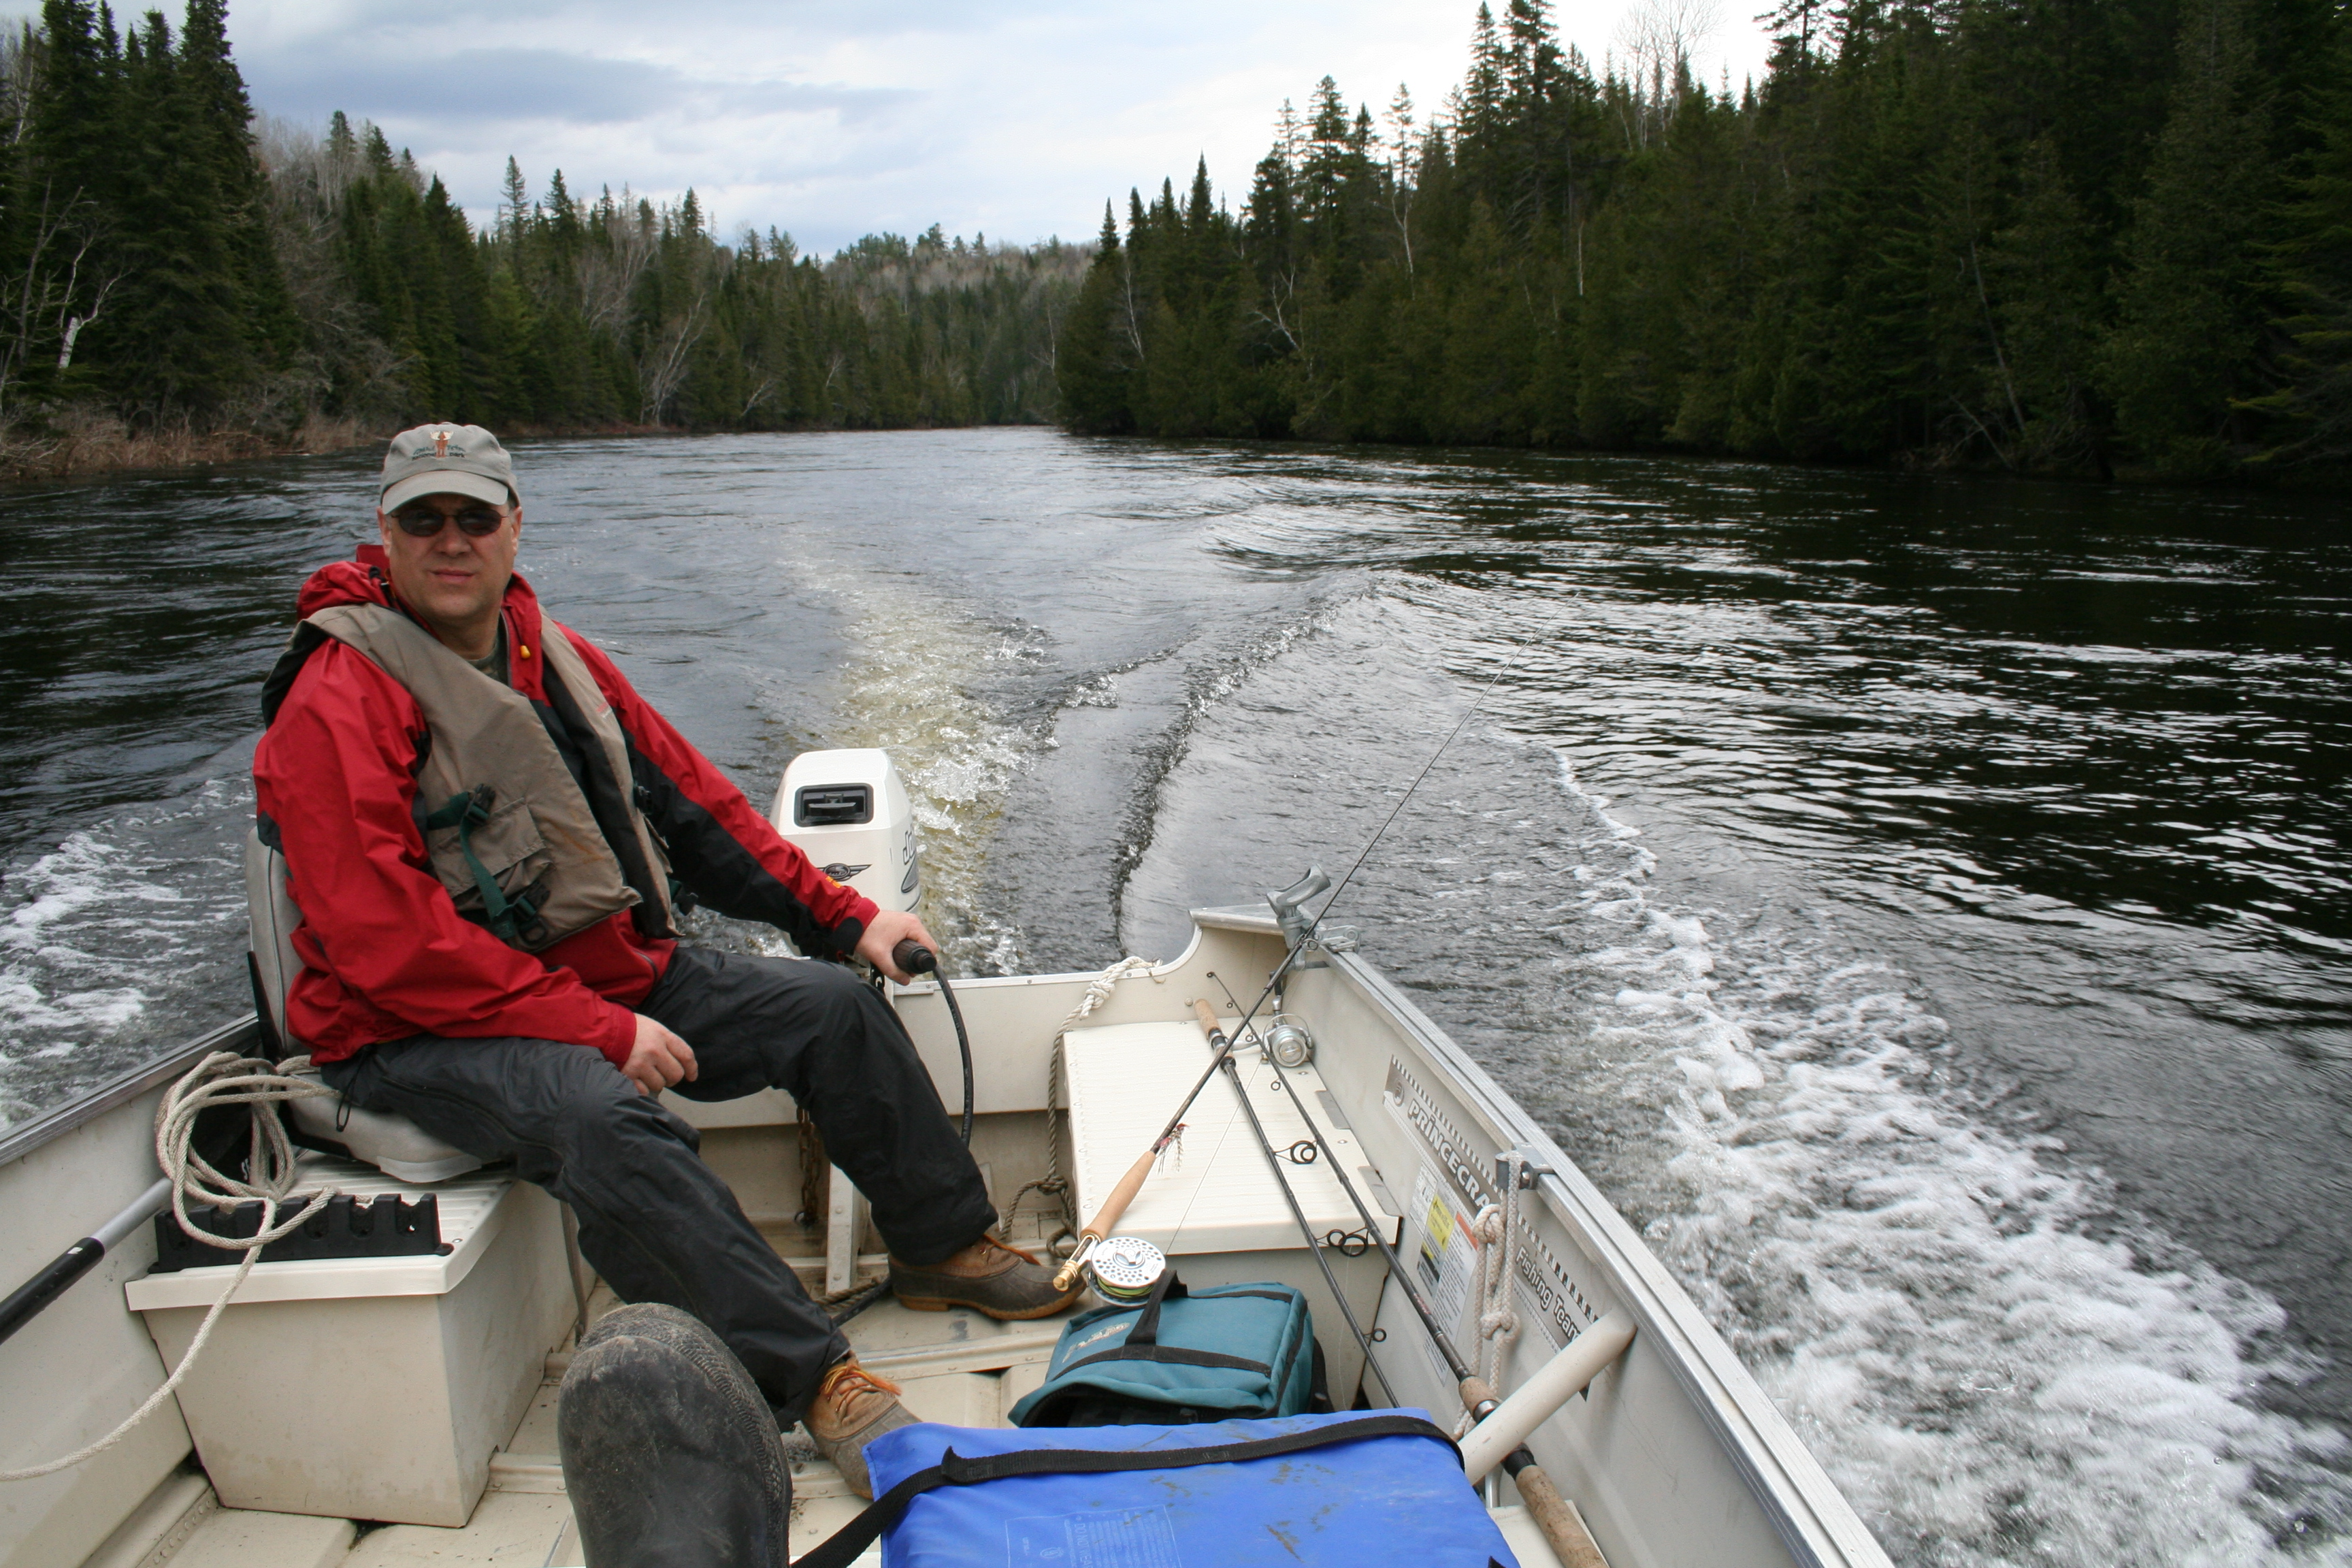 Dad navigating the flowing currents of the River.